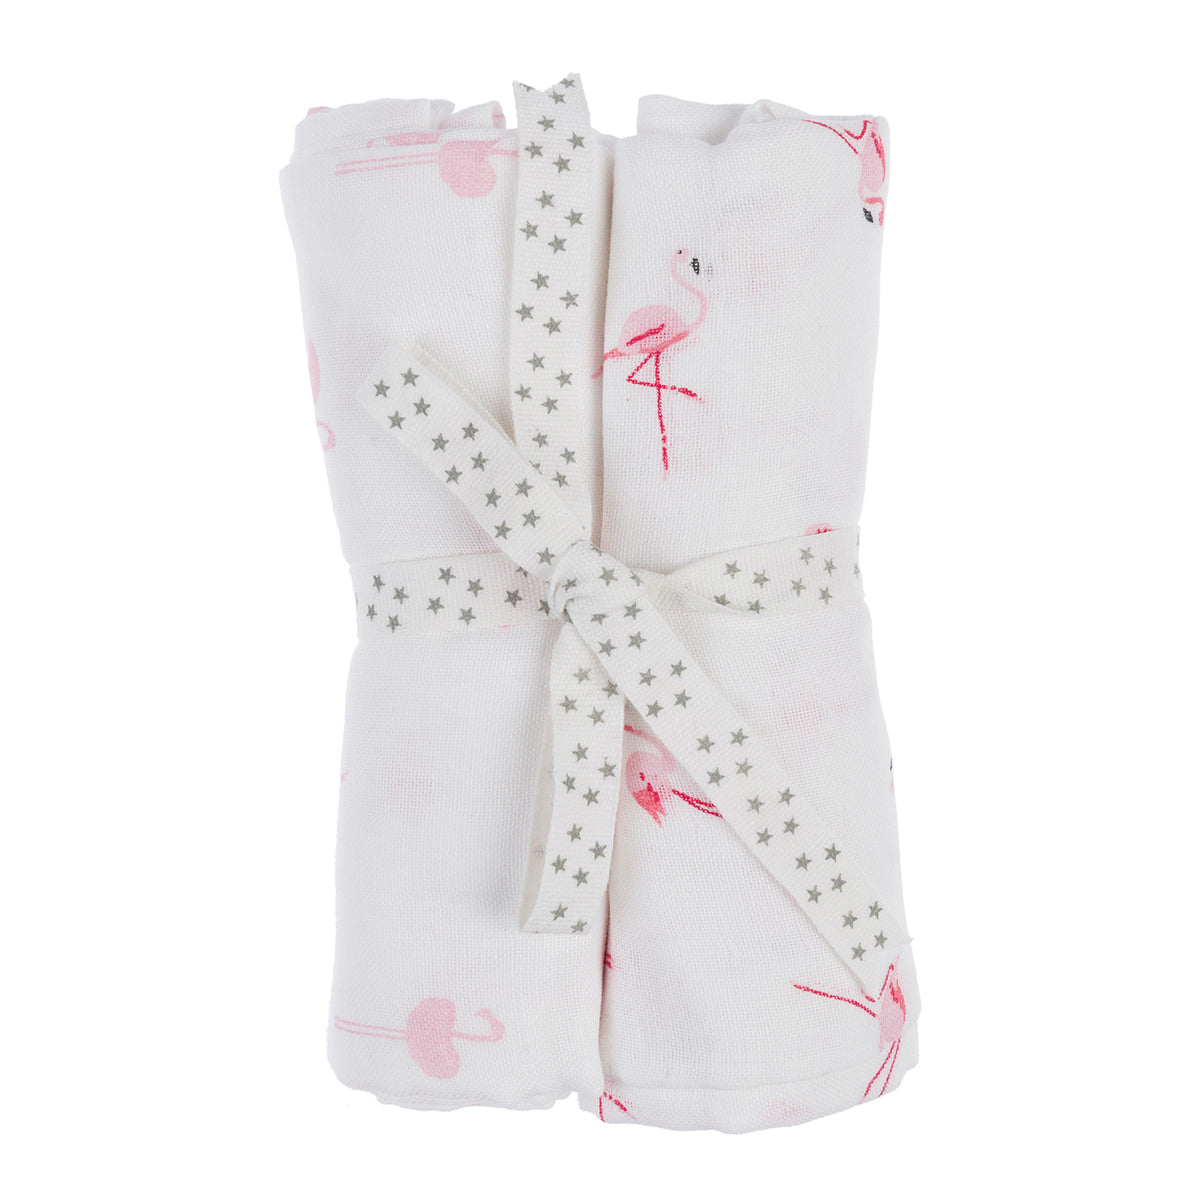 Flamingos Muslins (Pack of 2)